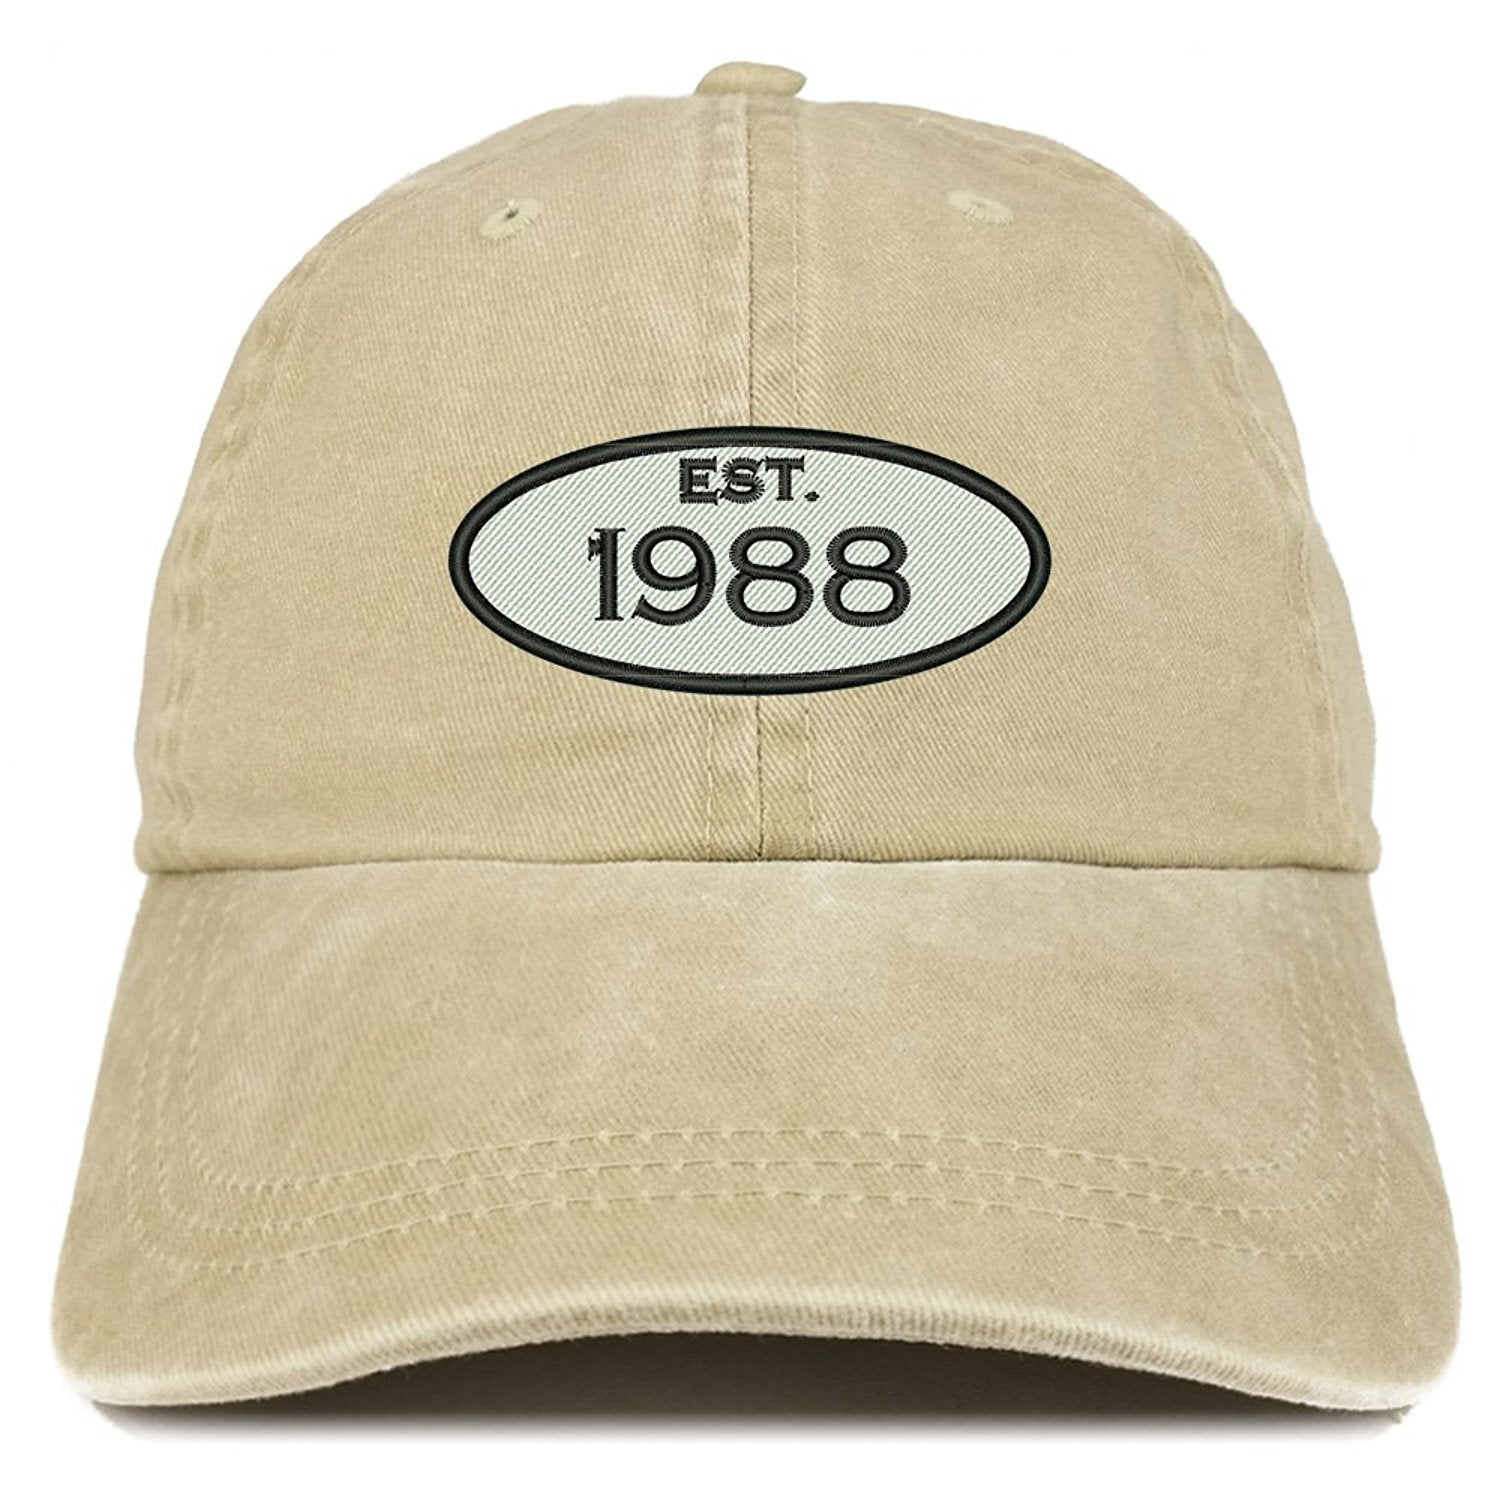 Trendy Apparel Shop Established 1988 Embroidered 30th Birthday Gift Pi